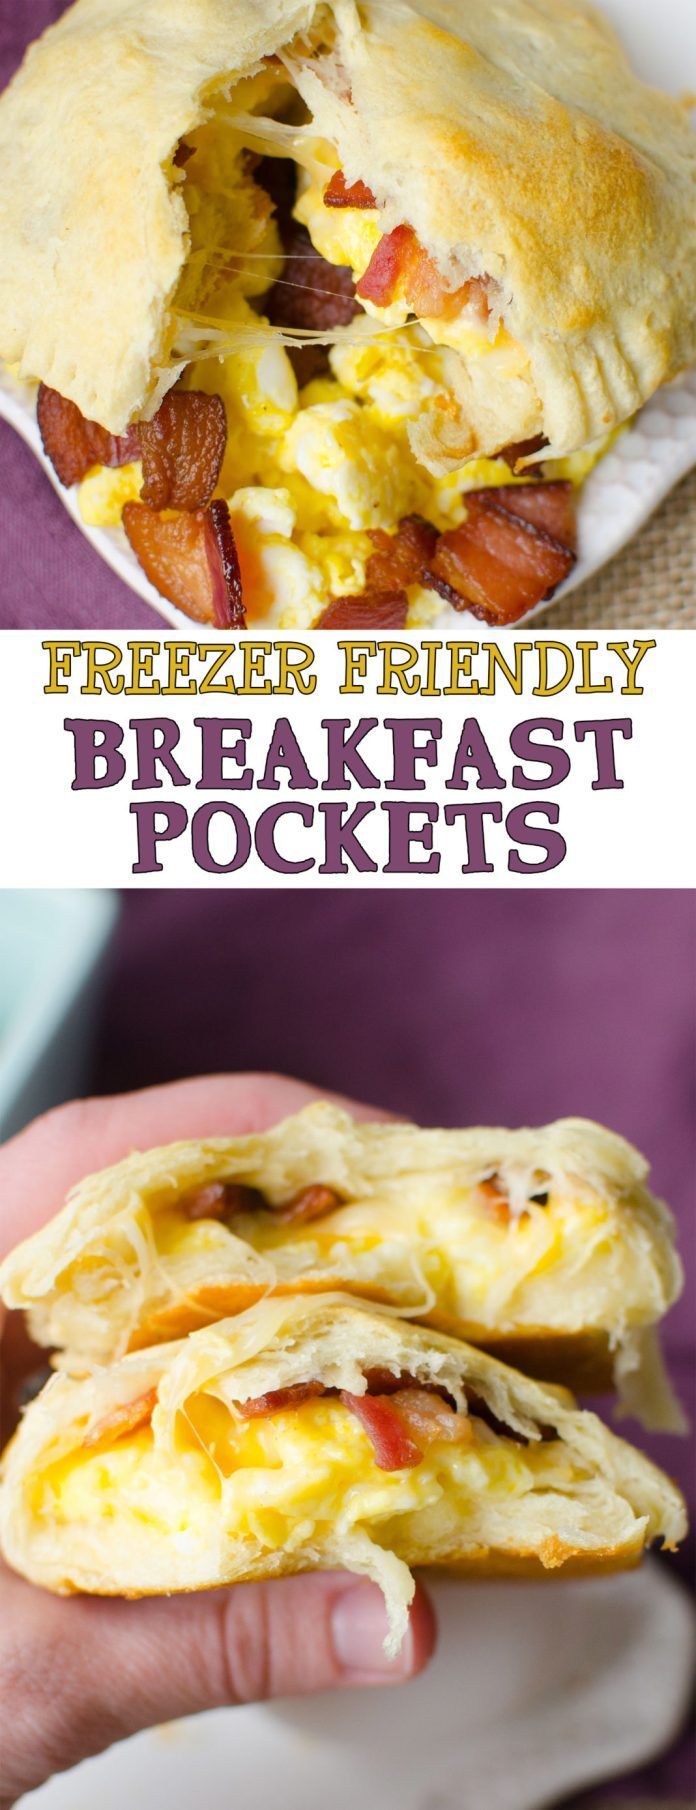 Bacon, Egg and Cheese Breakfast Pockets are full of fluffy scrambled eggs, bacon bits, and melted c